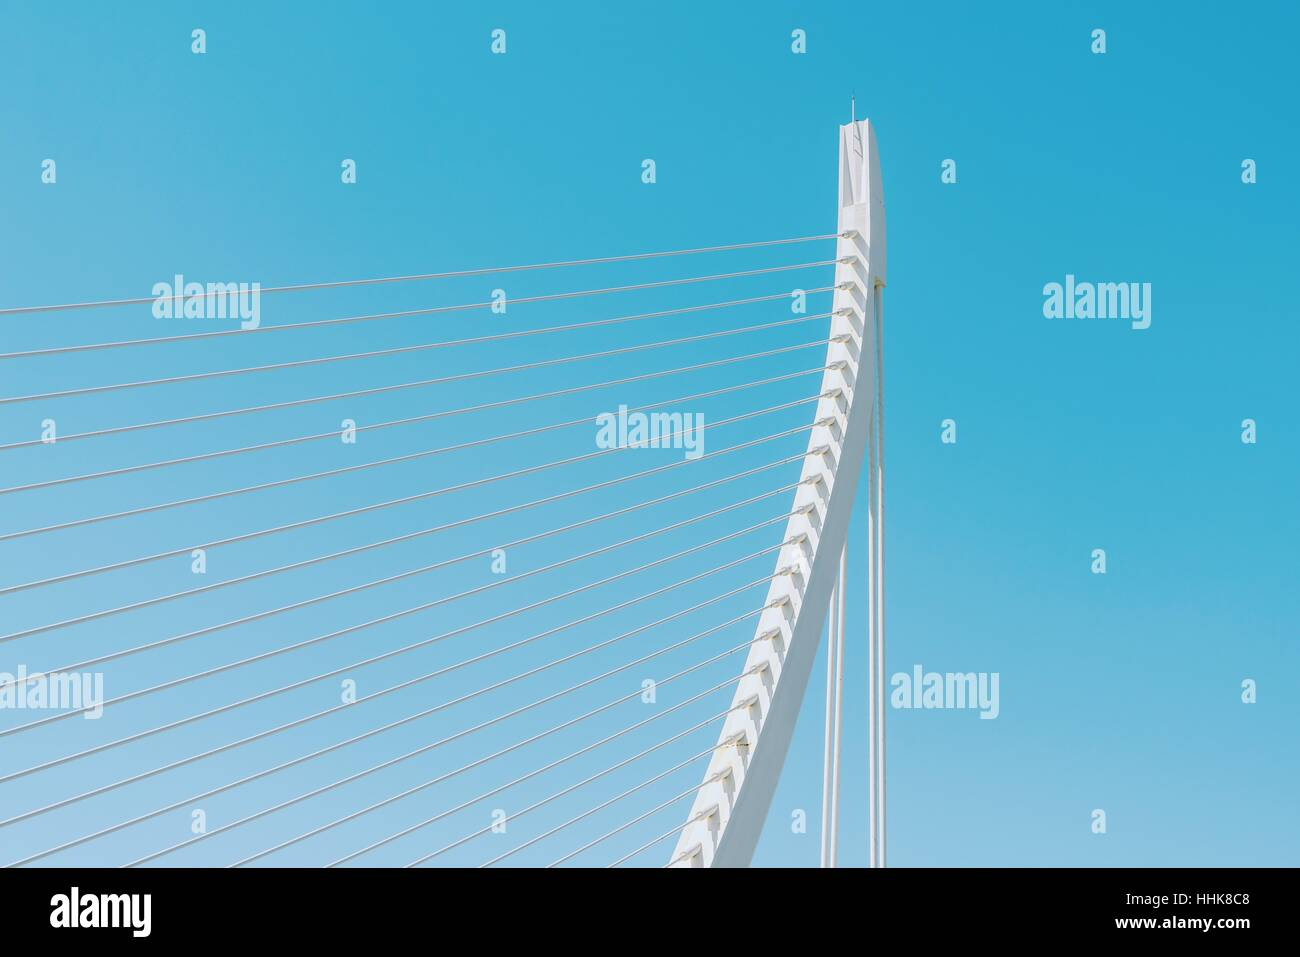 White Abstract Bridge Structure On Sky Stock Photo